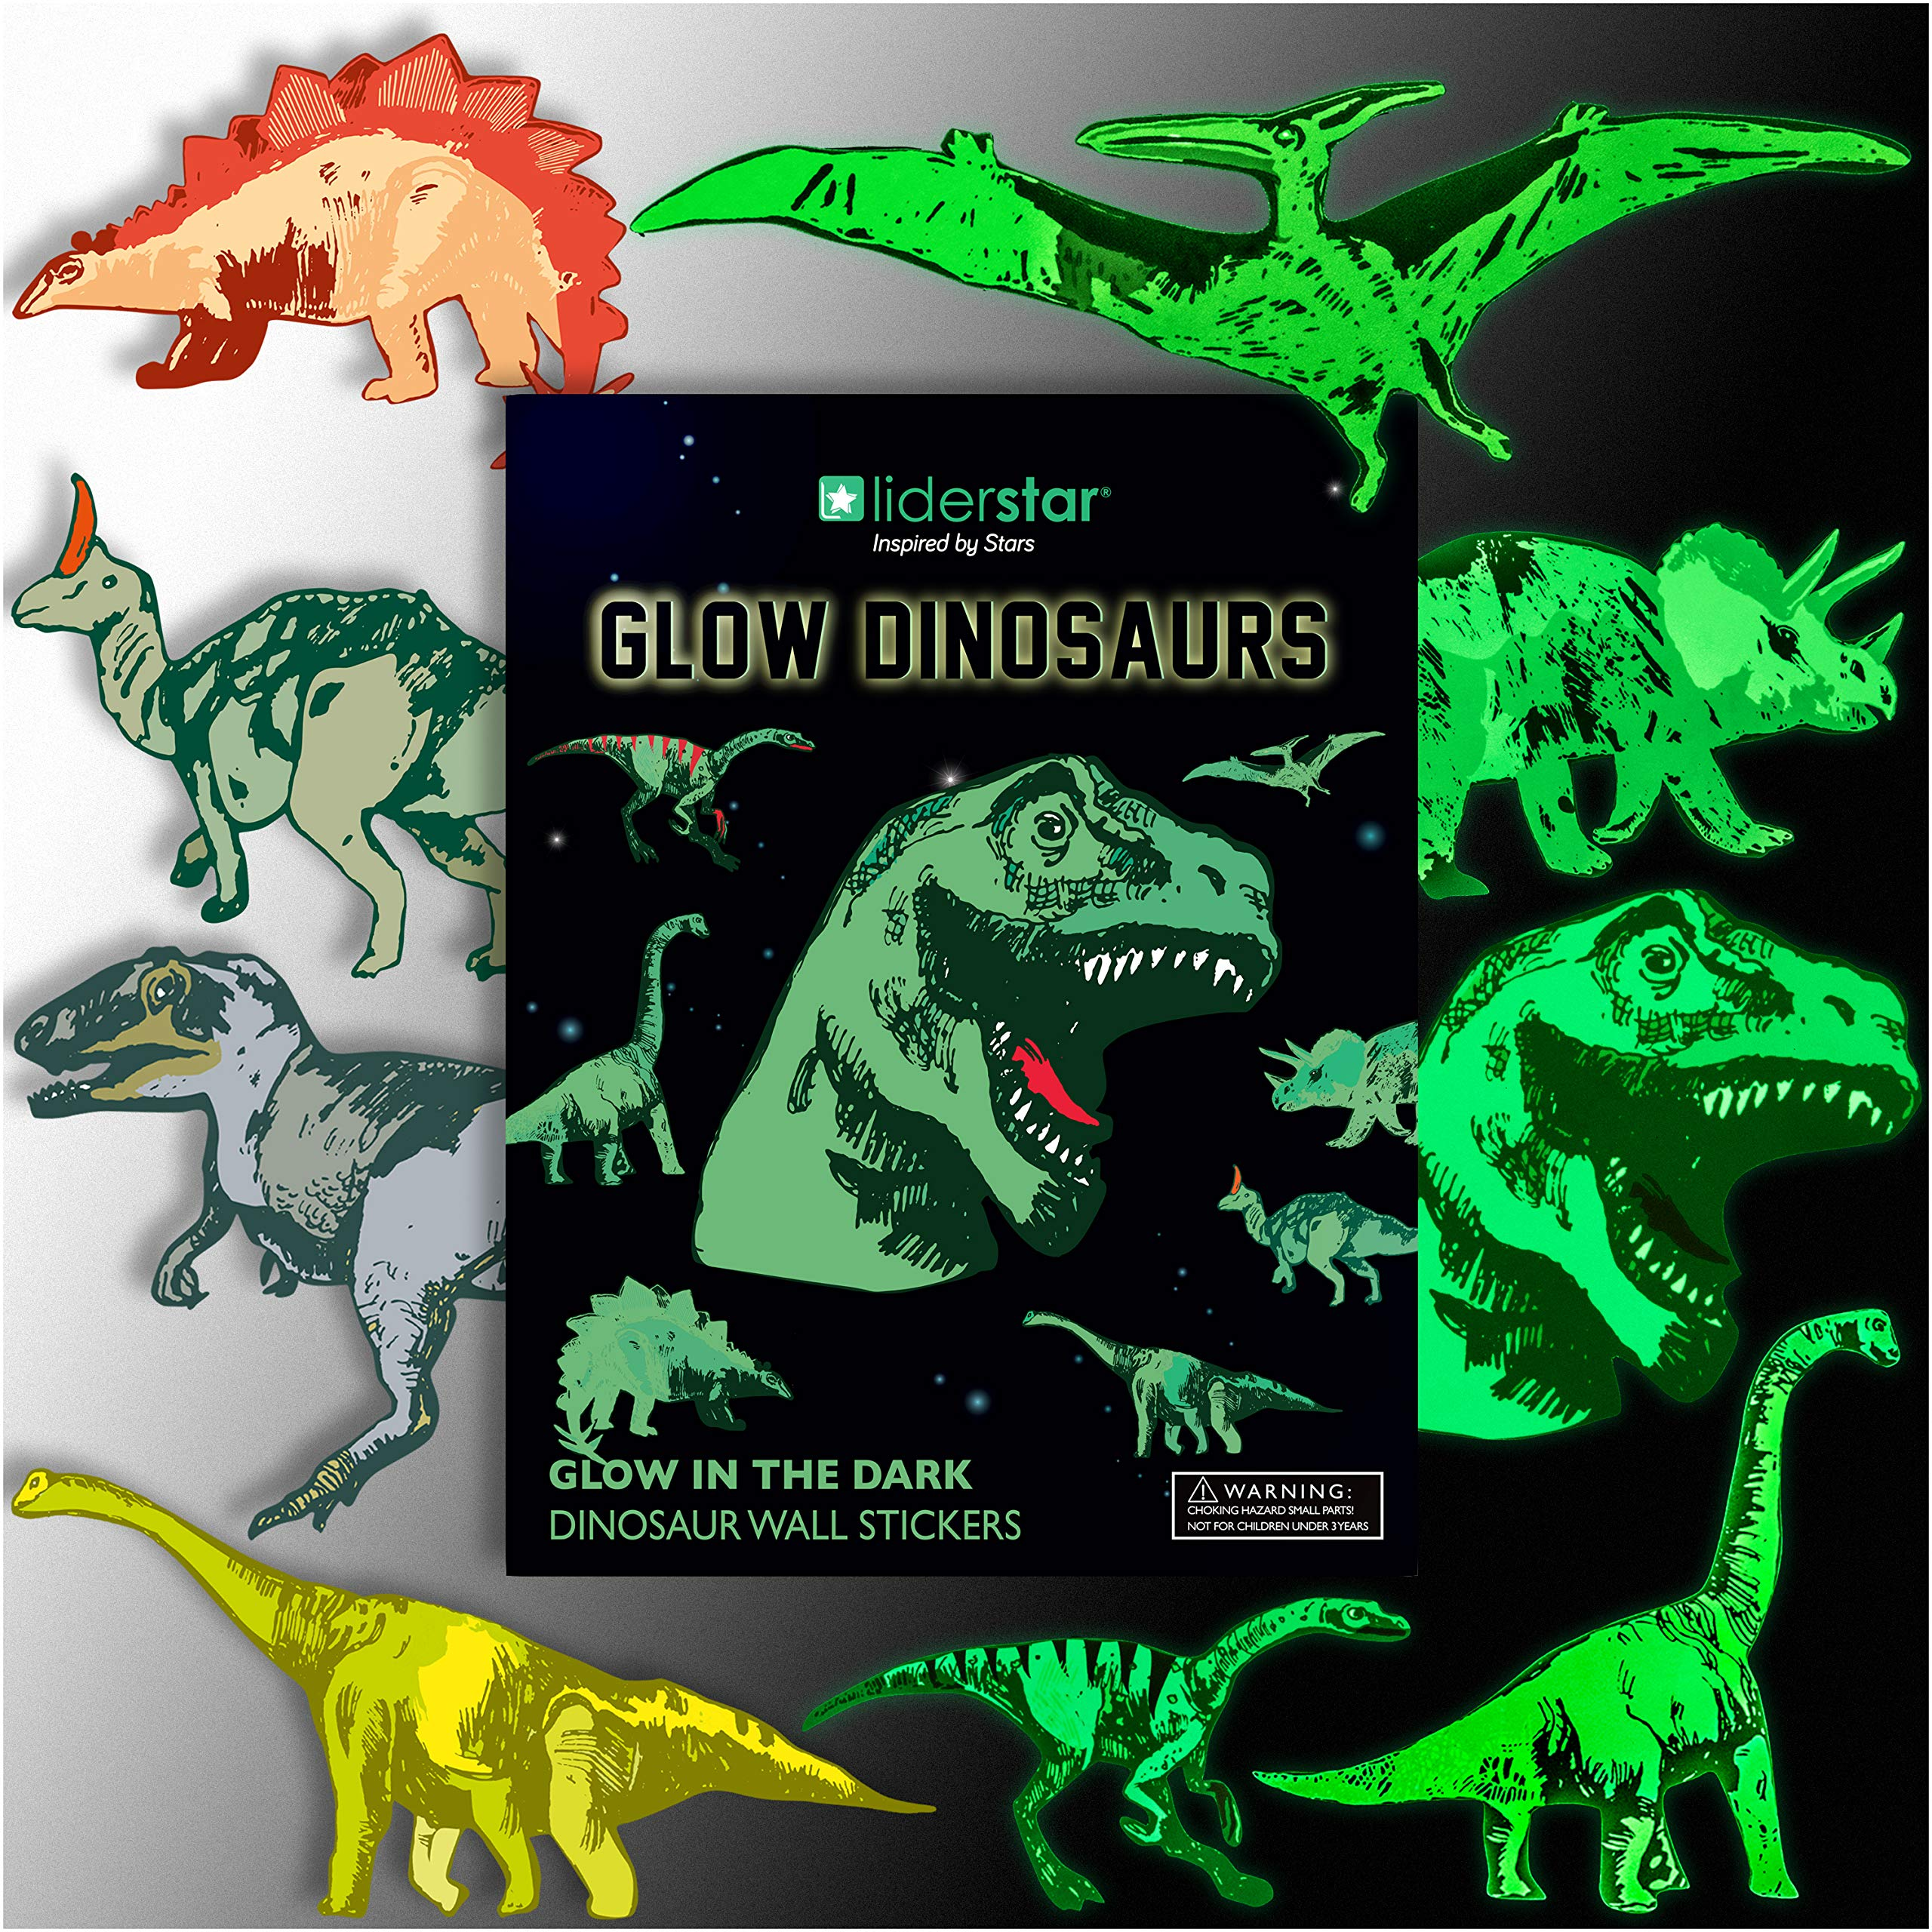 Perfect for a Dino lover